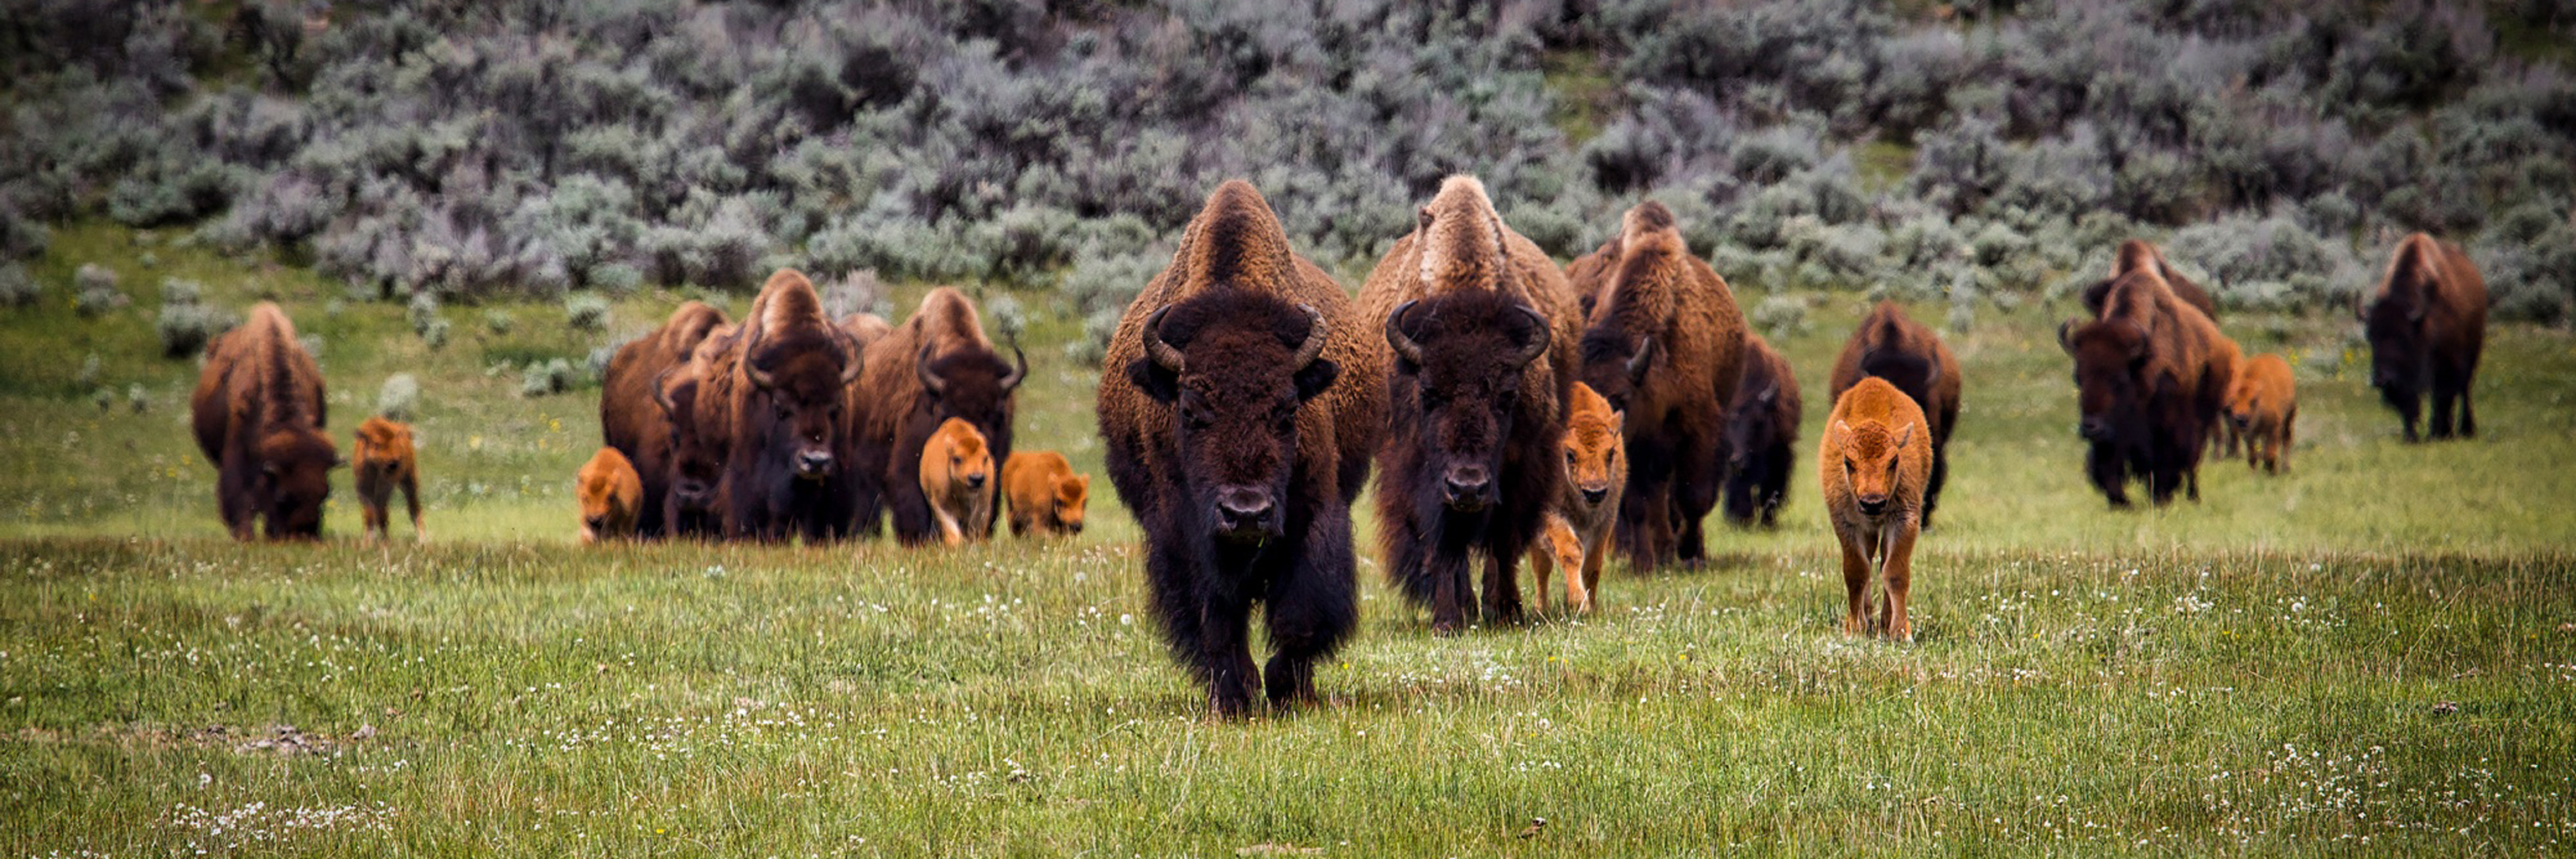 A herd of bison in a prairie